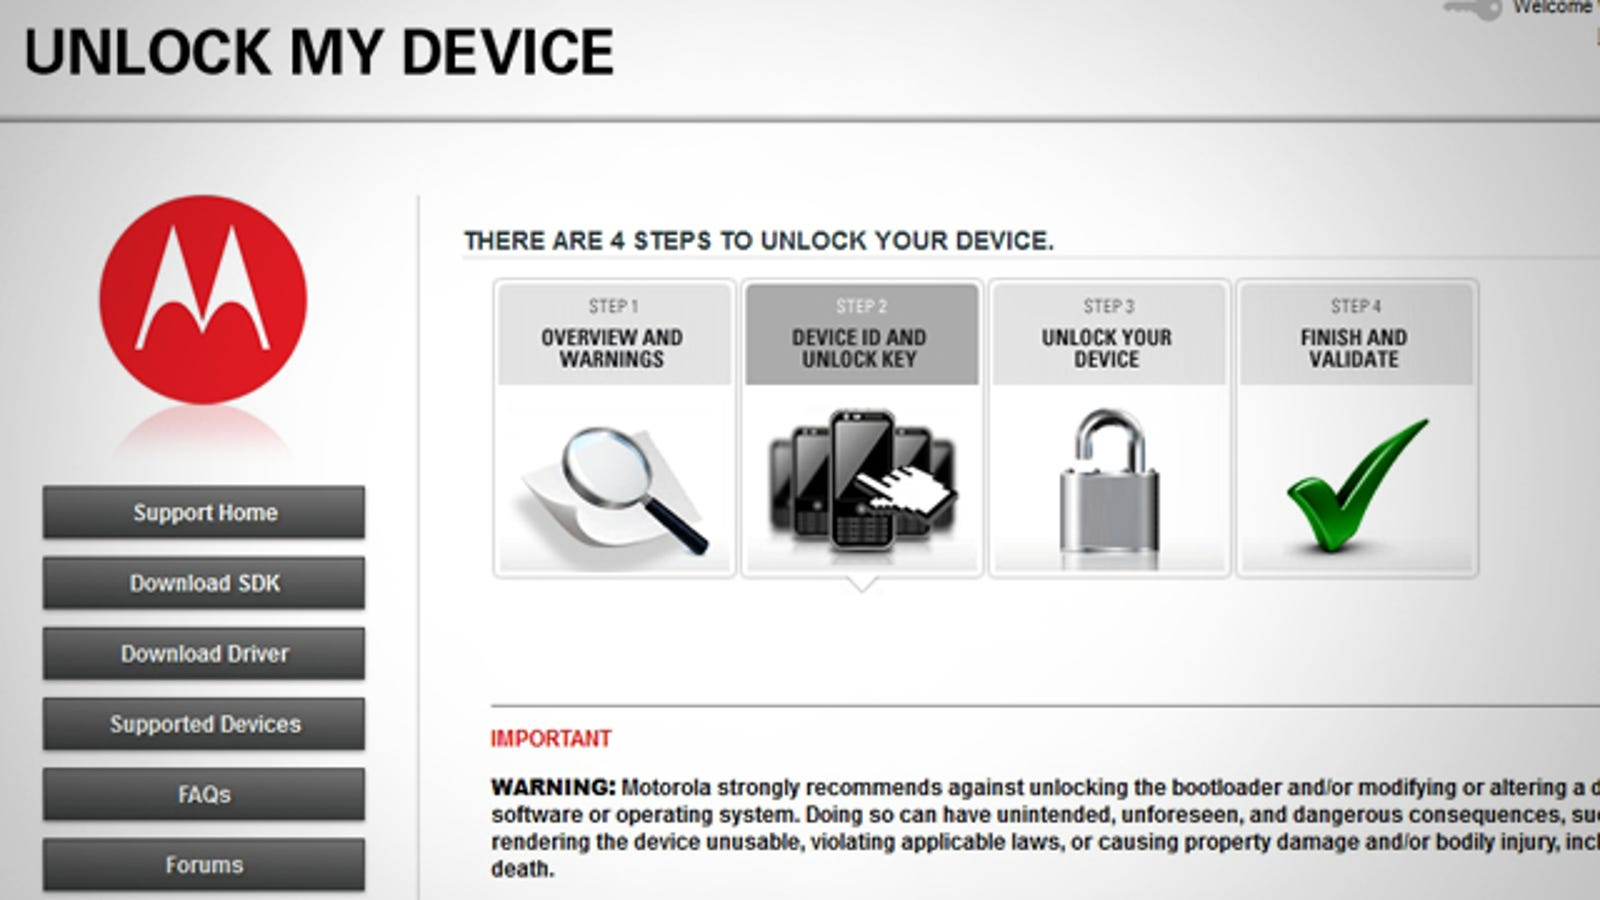 Motorola Launches Official Bootloader Unlocking Tool for Android Phones